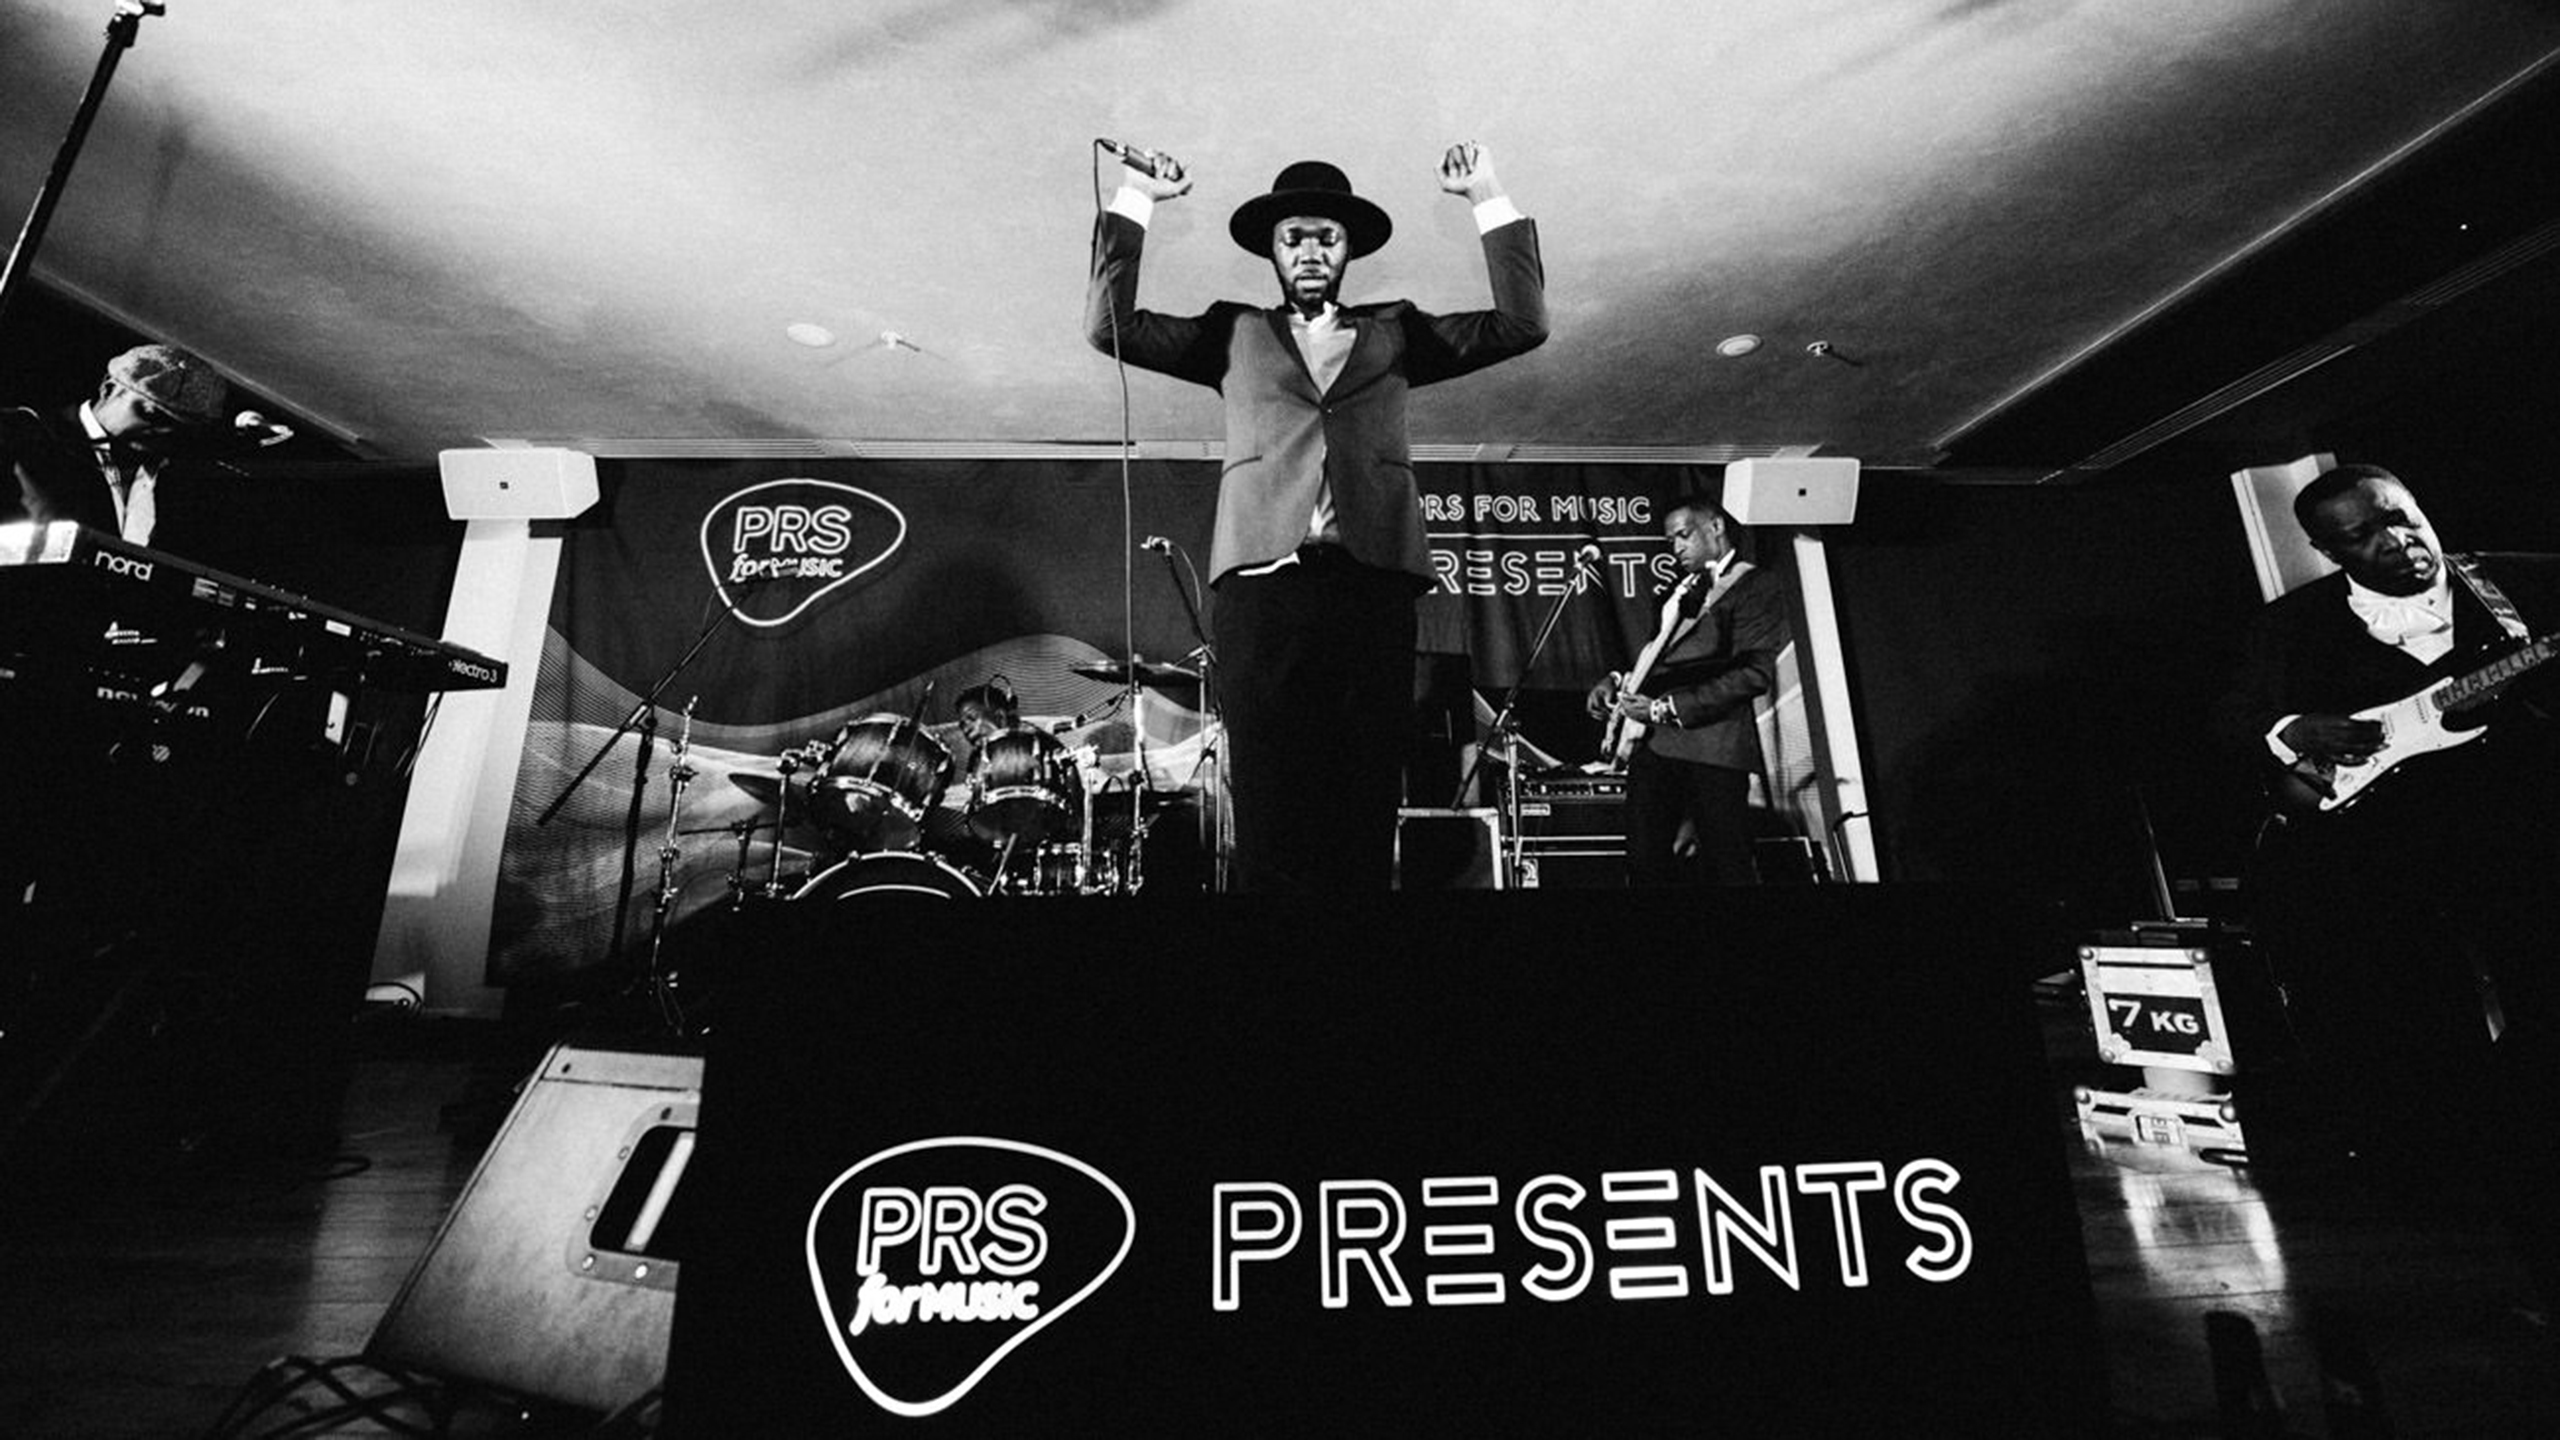 Baloji, wearing a black hat and jacket, raises his arms on stage at PRS for Music Presents, surrounded by his live band